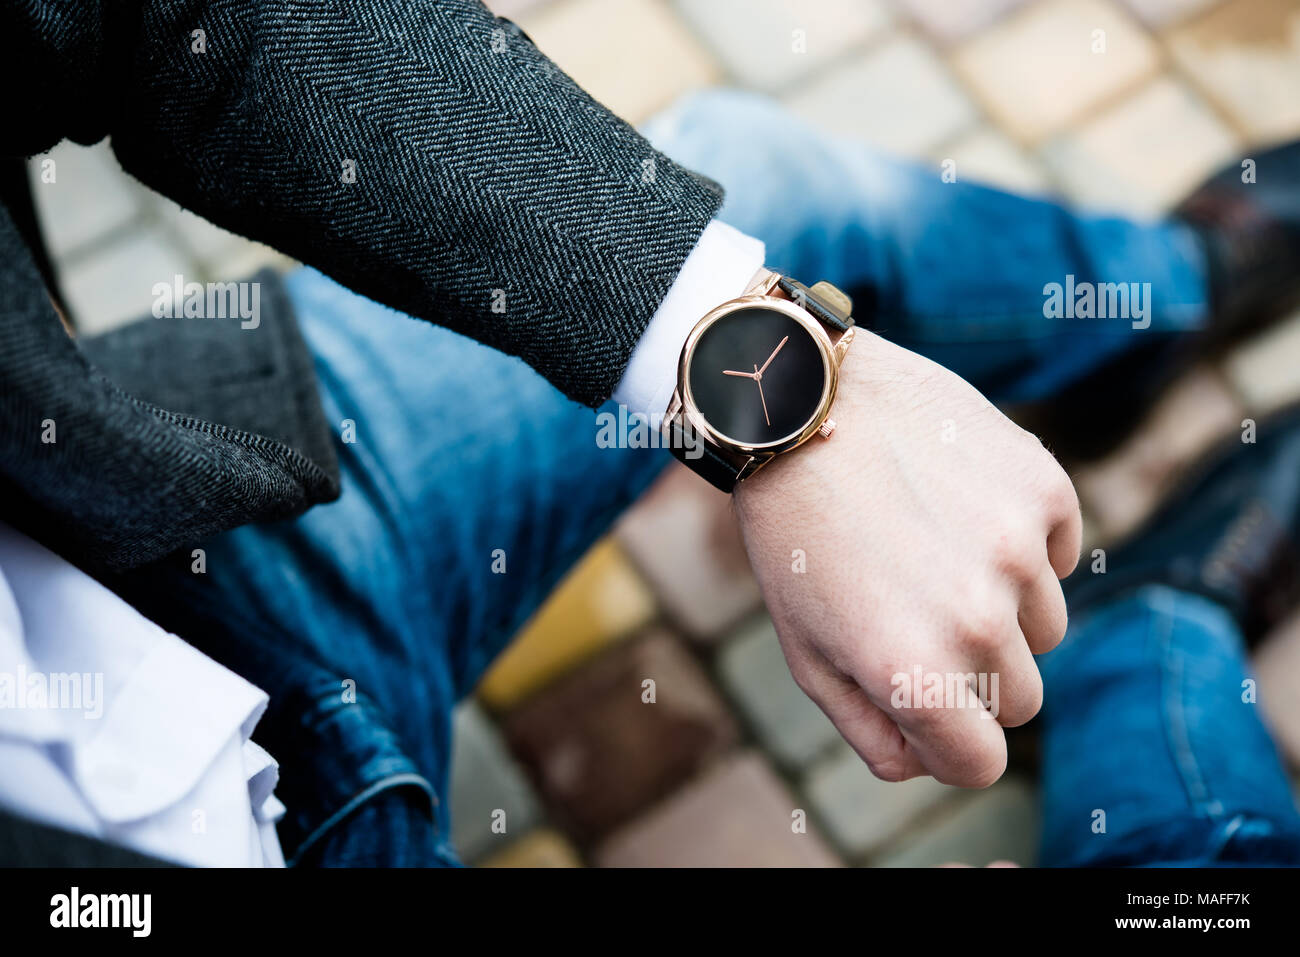 Wrist Watch Men In Gold Stock Photos & Wrist Watch Men In Gold Stock ...